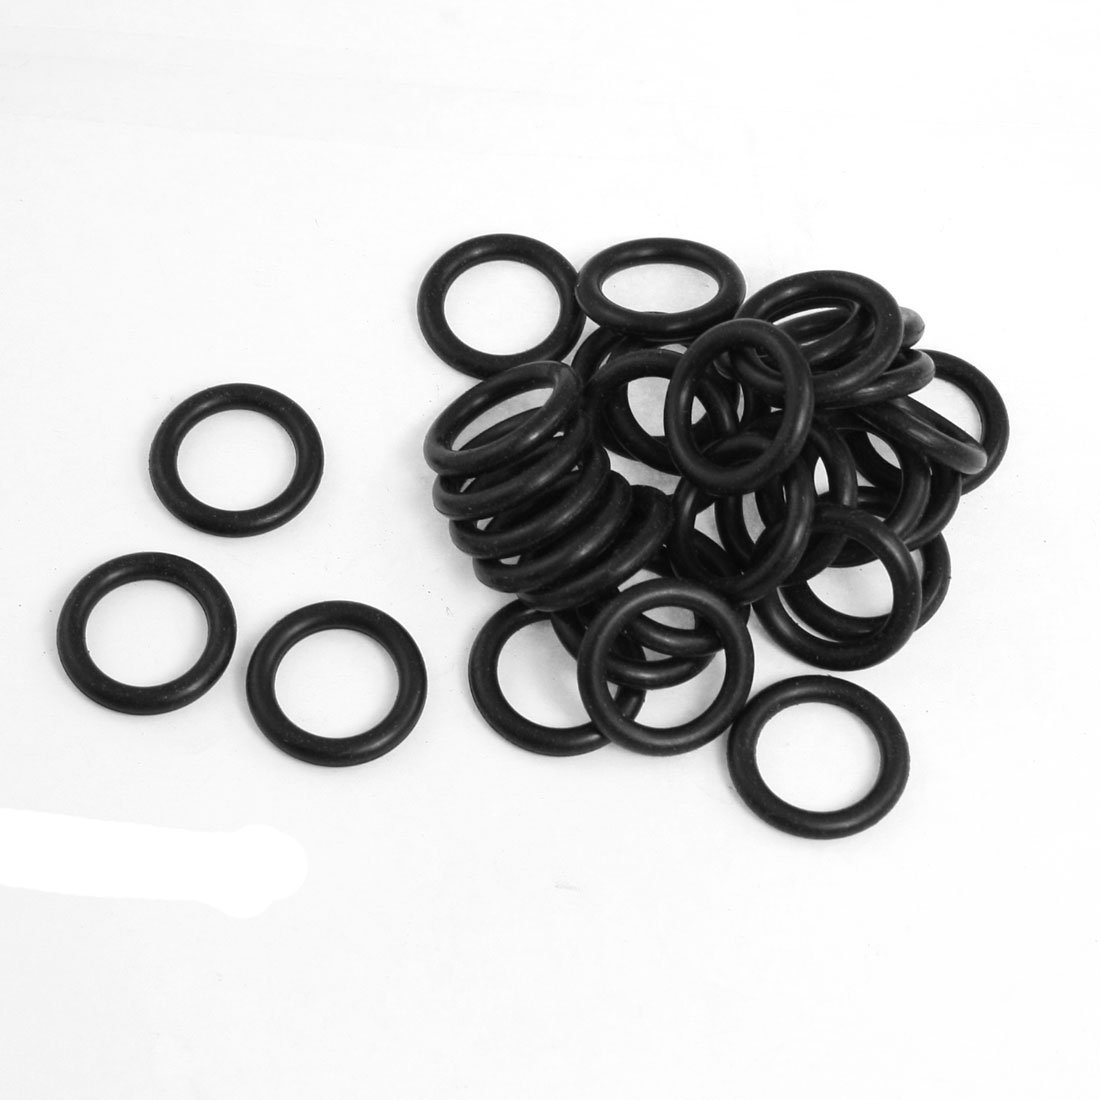 uxcell 50 Pcs 22mmx1.5mmx15mm Mechanical Black NBR O Rings Oil Seal Washers